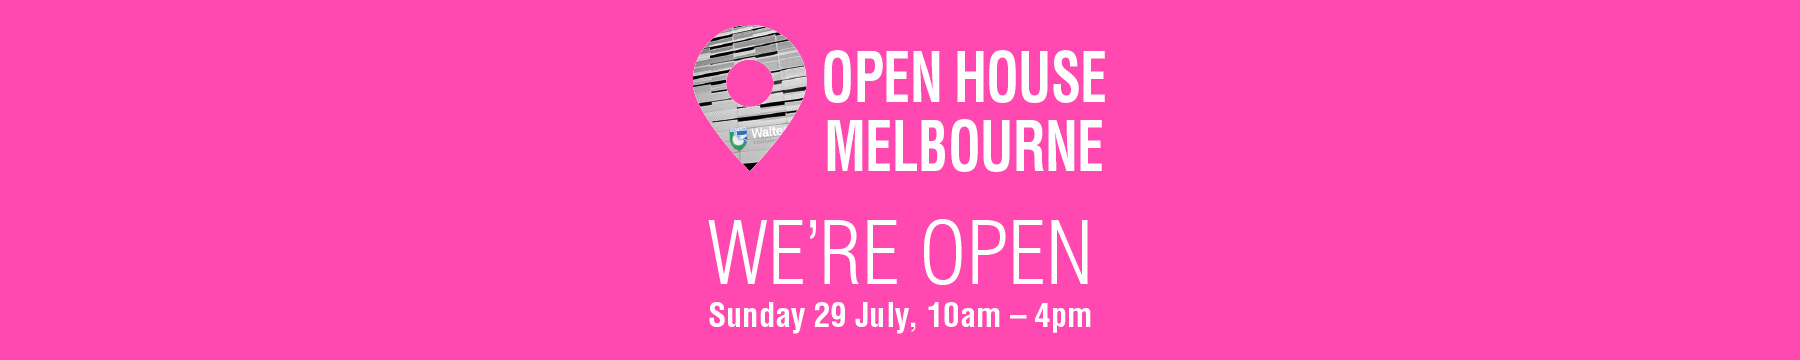 Open House Melbourne 29 July